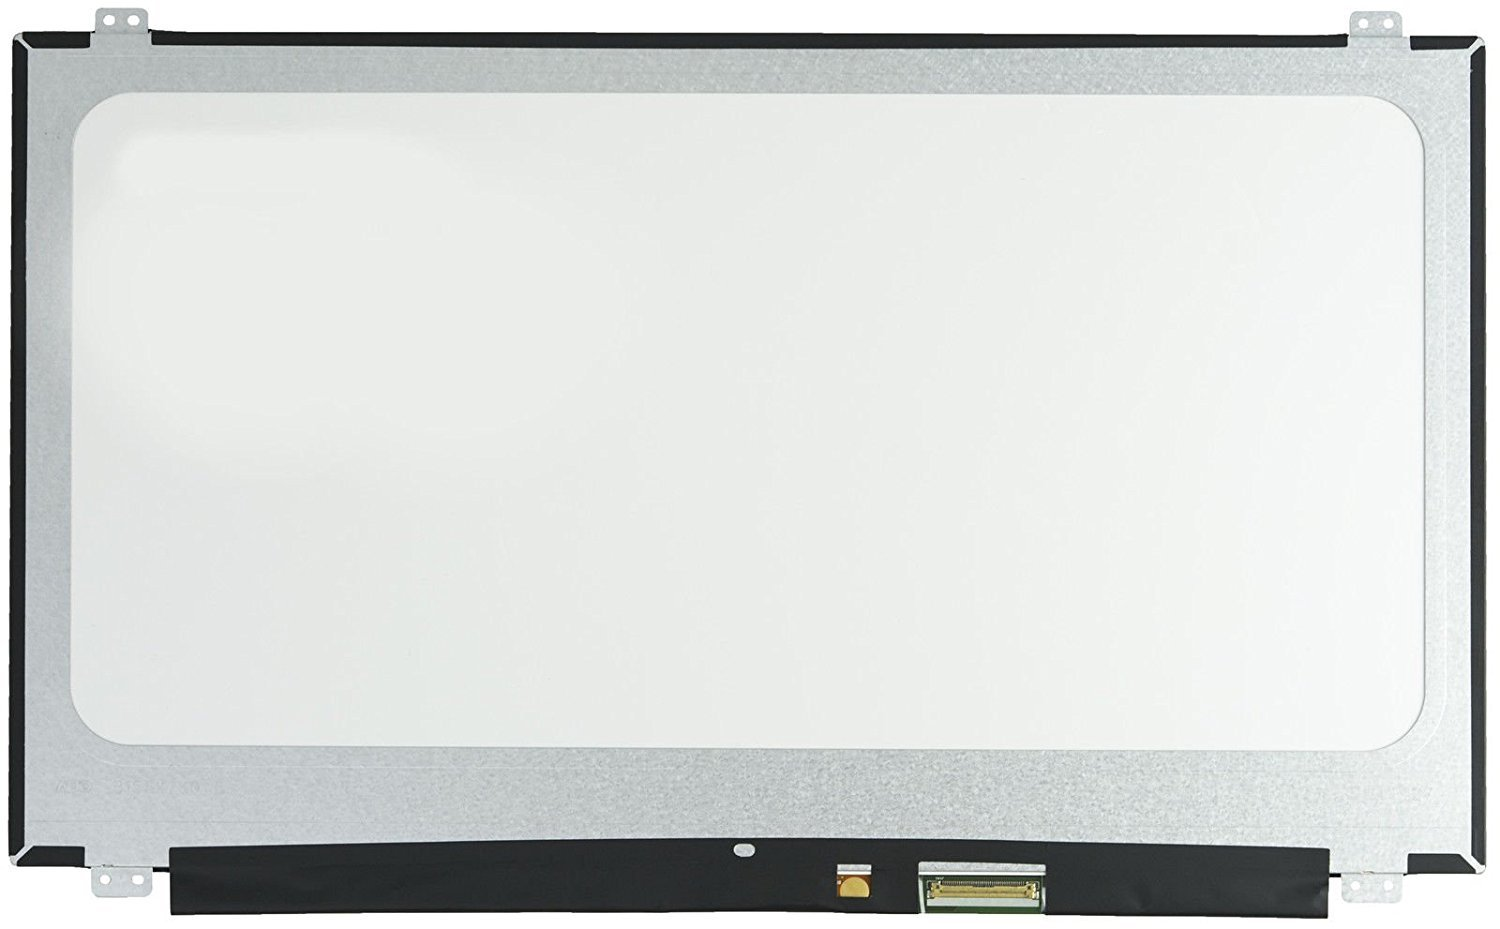 New Inspiron 15 7560 15.6'' FHD LED LCD Replacement Screen